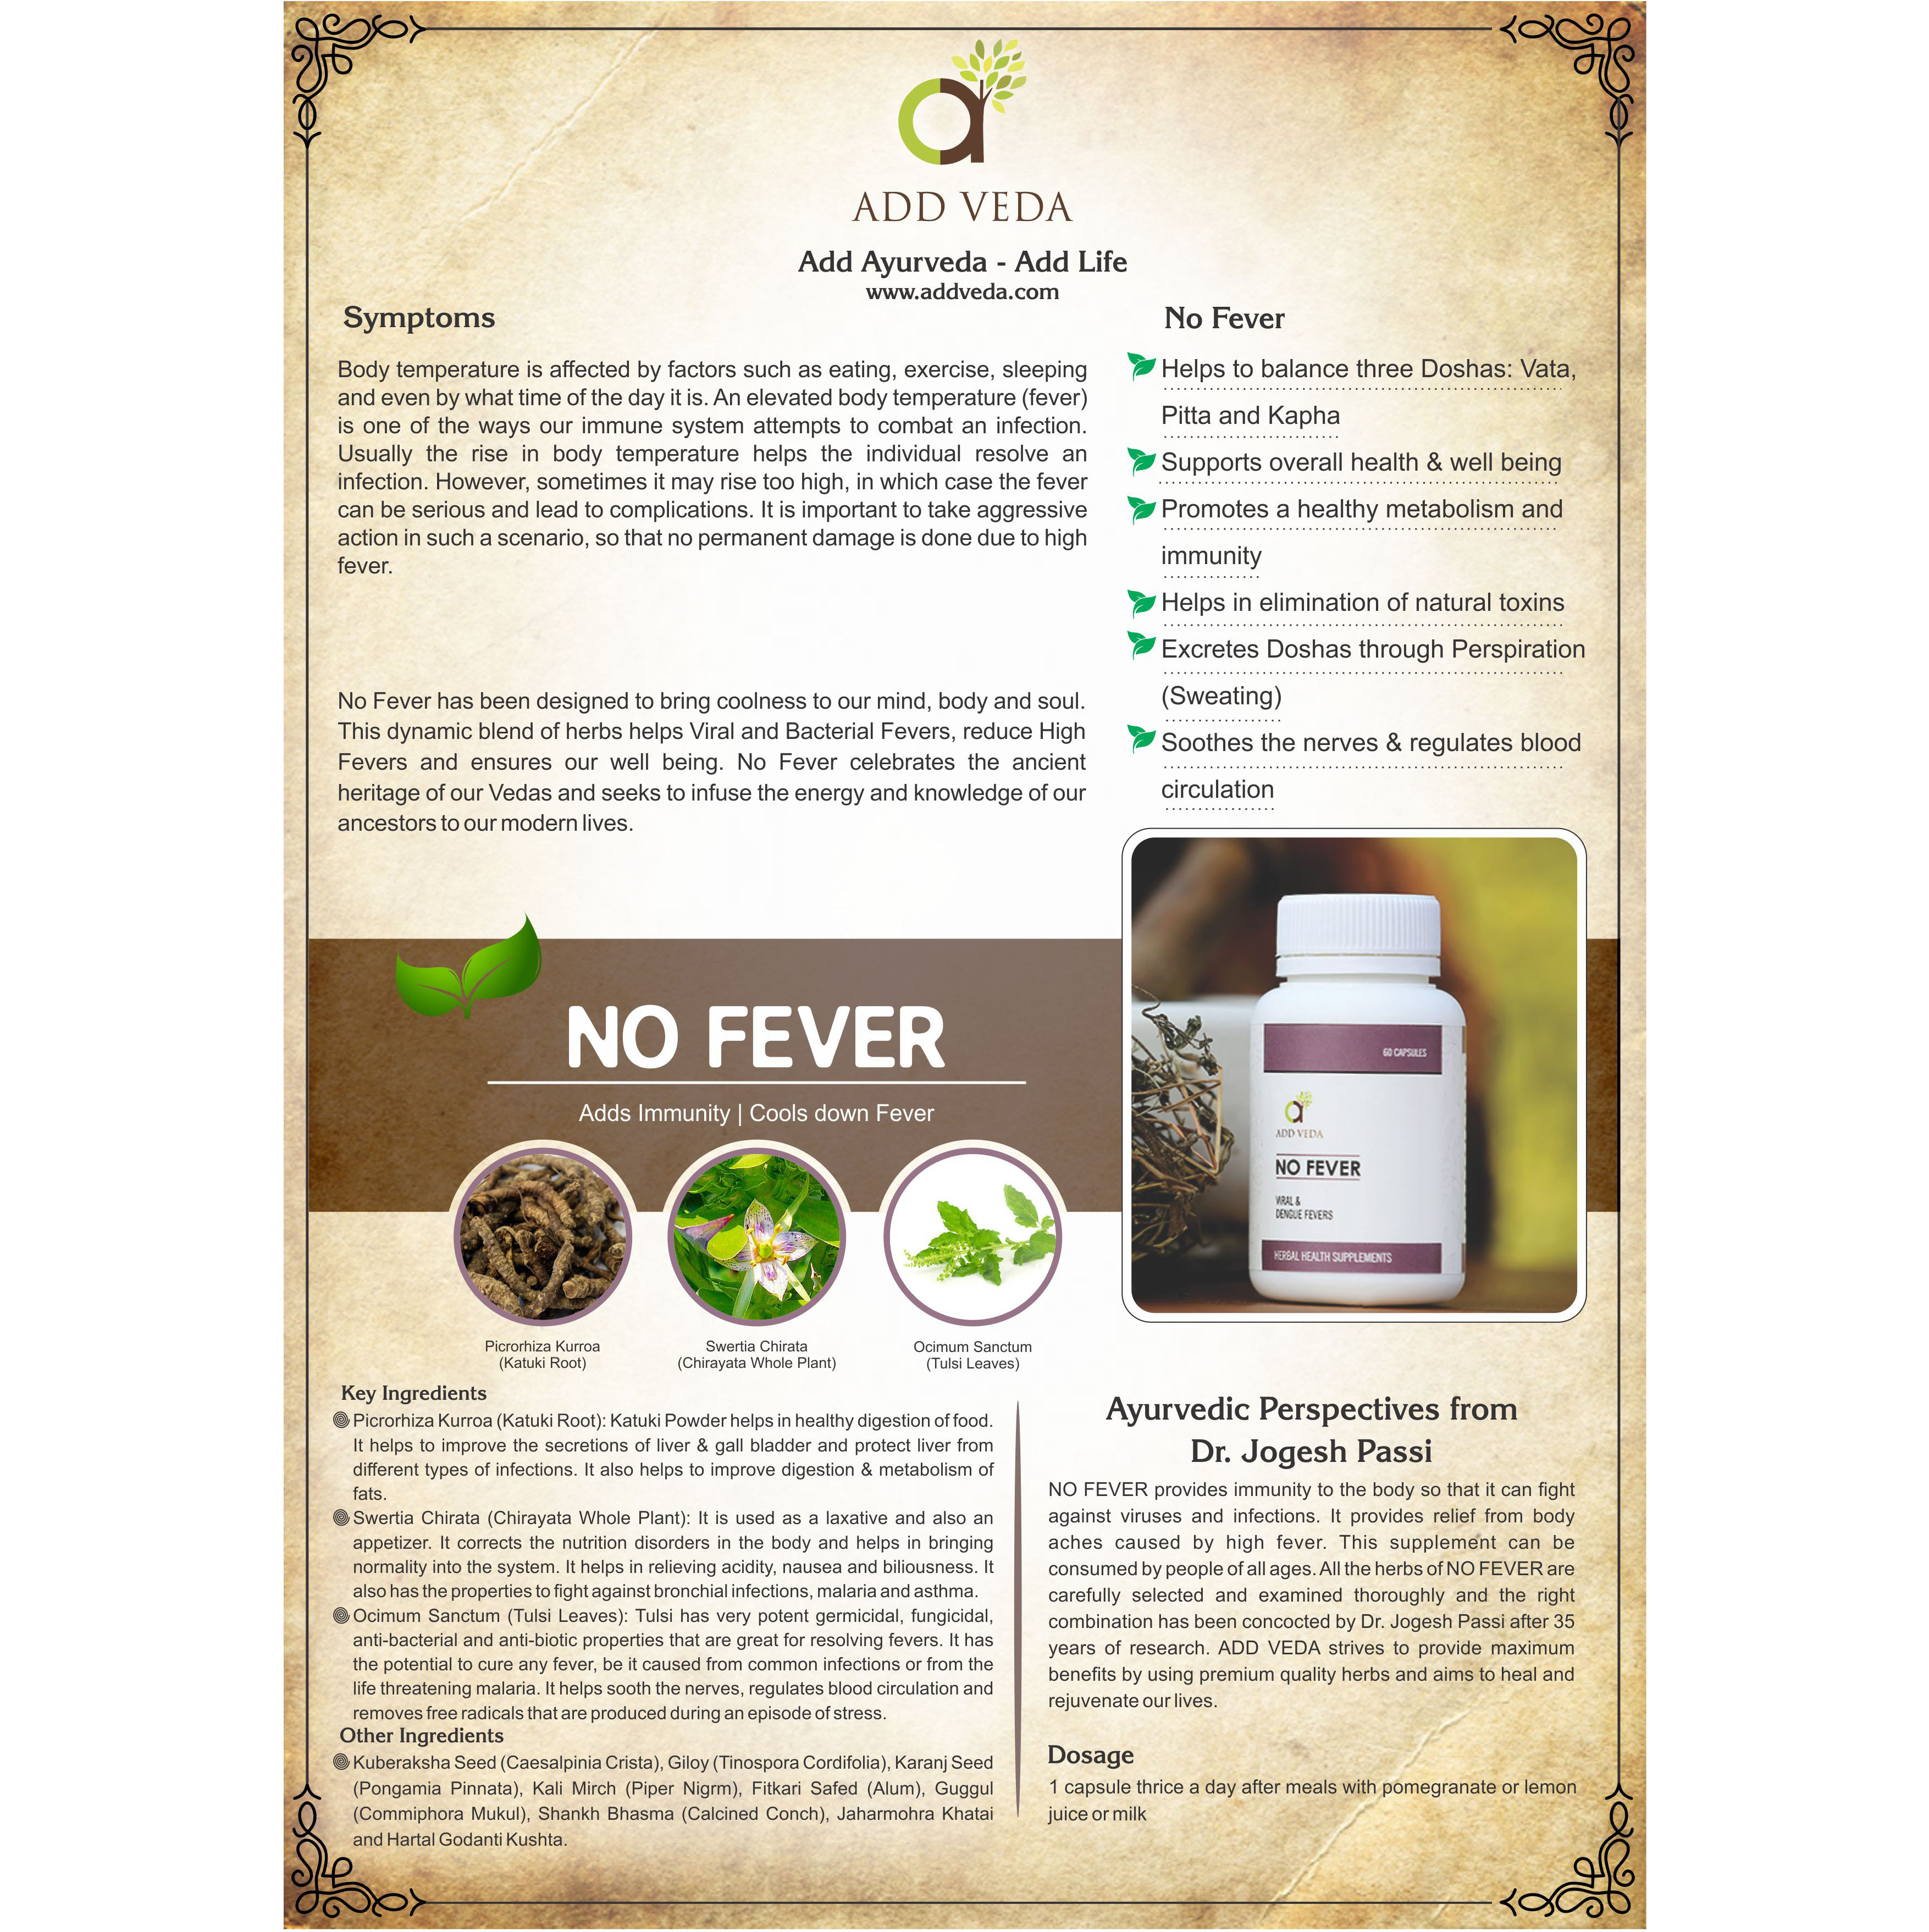 57dab5b35172baddveda products book final no fever.jpg